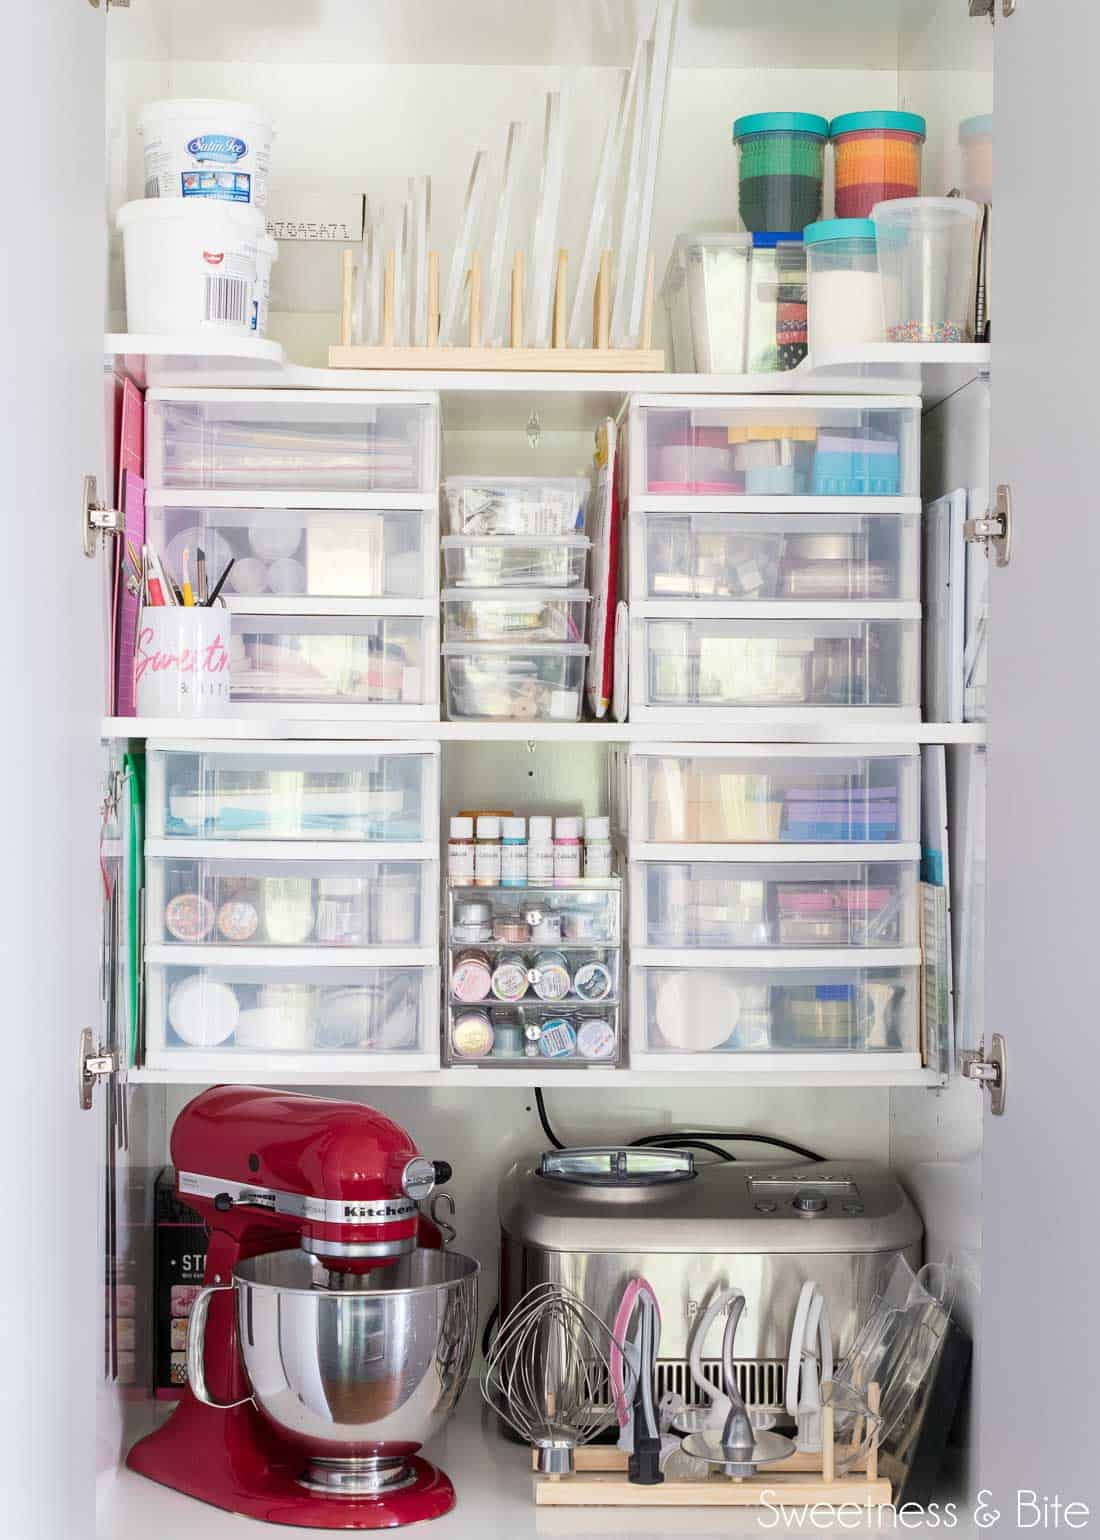 Cake Decorating Equipment Pantry